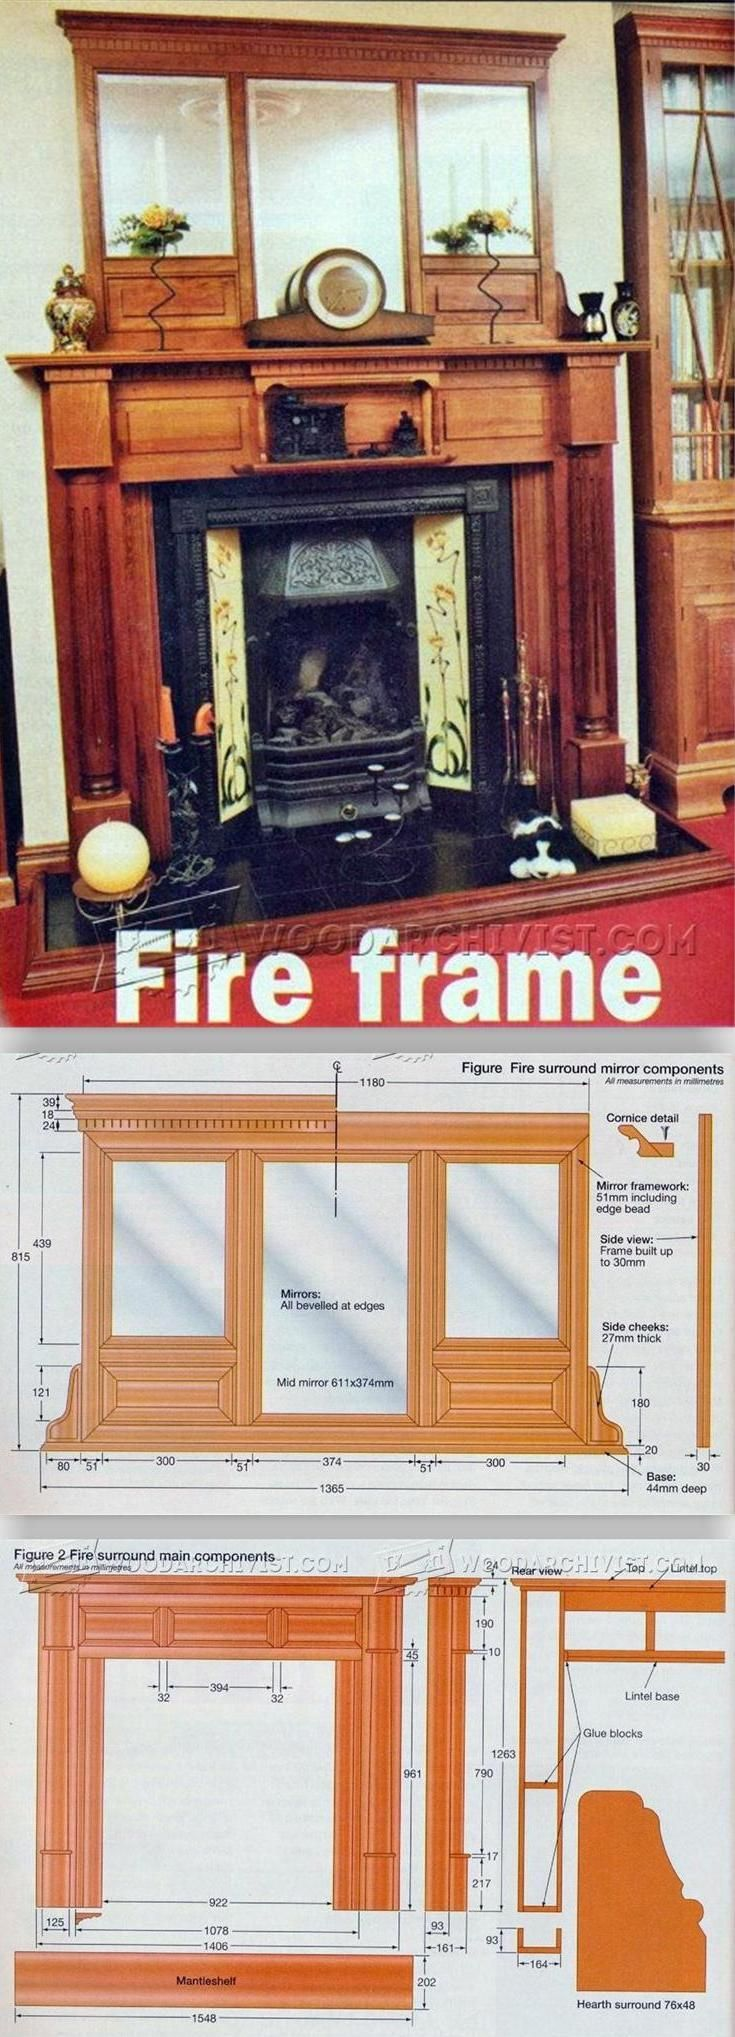 Fireplace Mantels Plans - Woodworking Plans and Projects | WoodArchivist.com